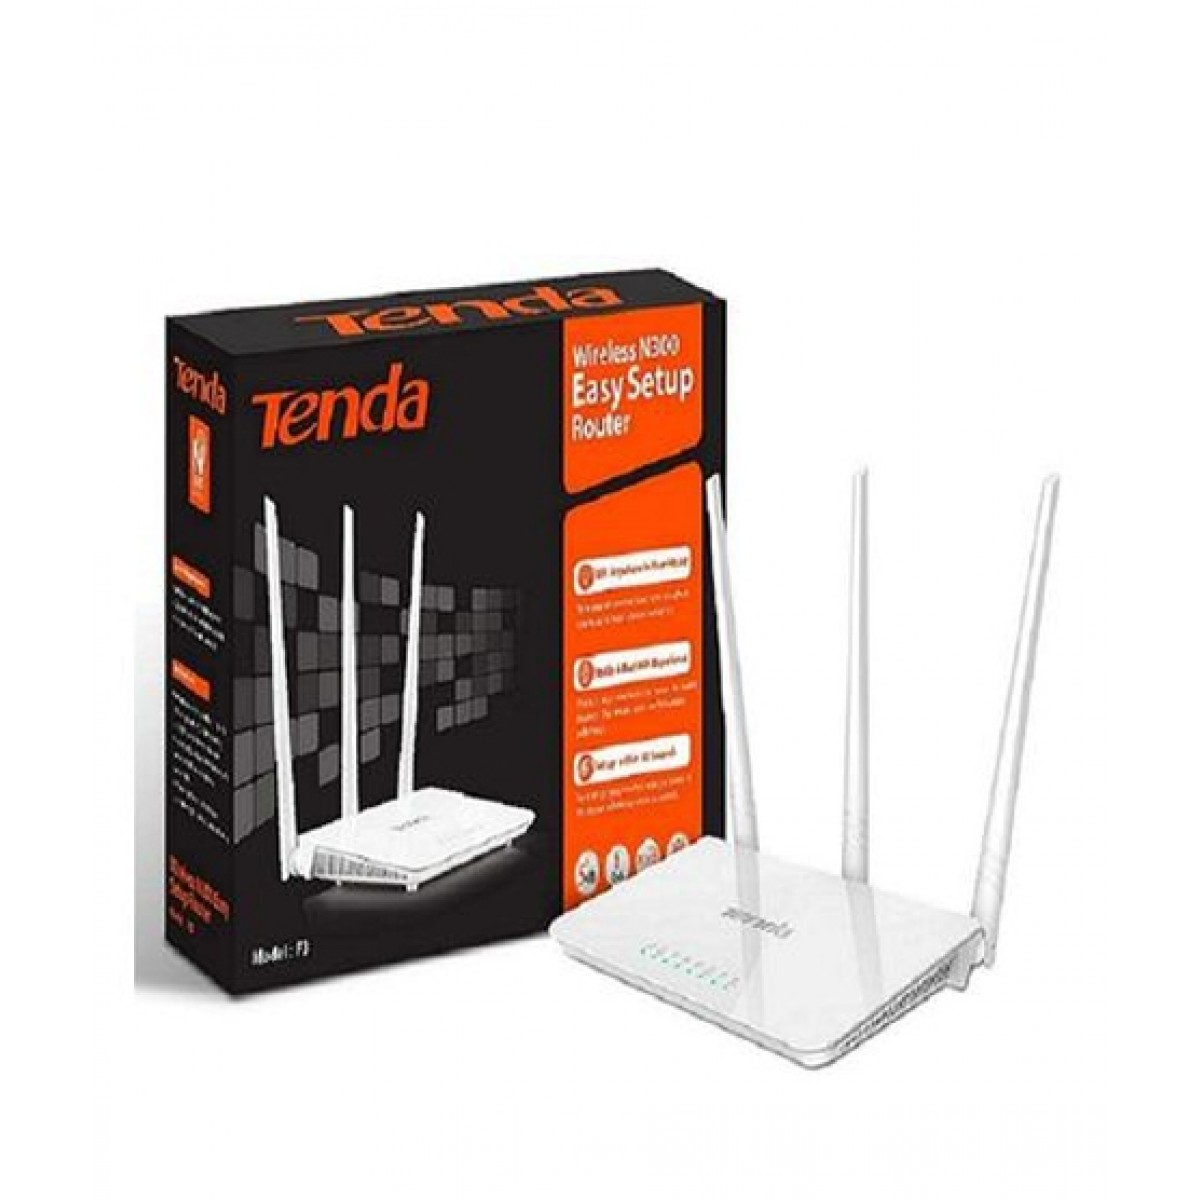 Tenda F3 300MBPS Wireless N Router (3xAntenna)